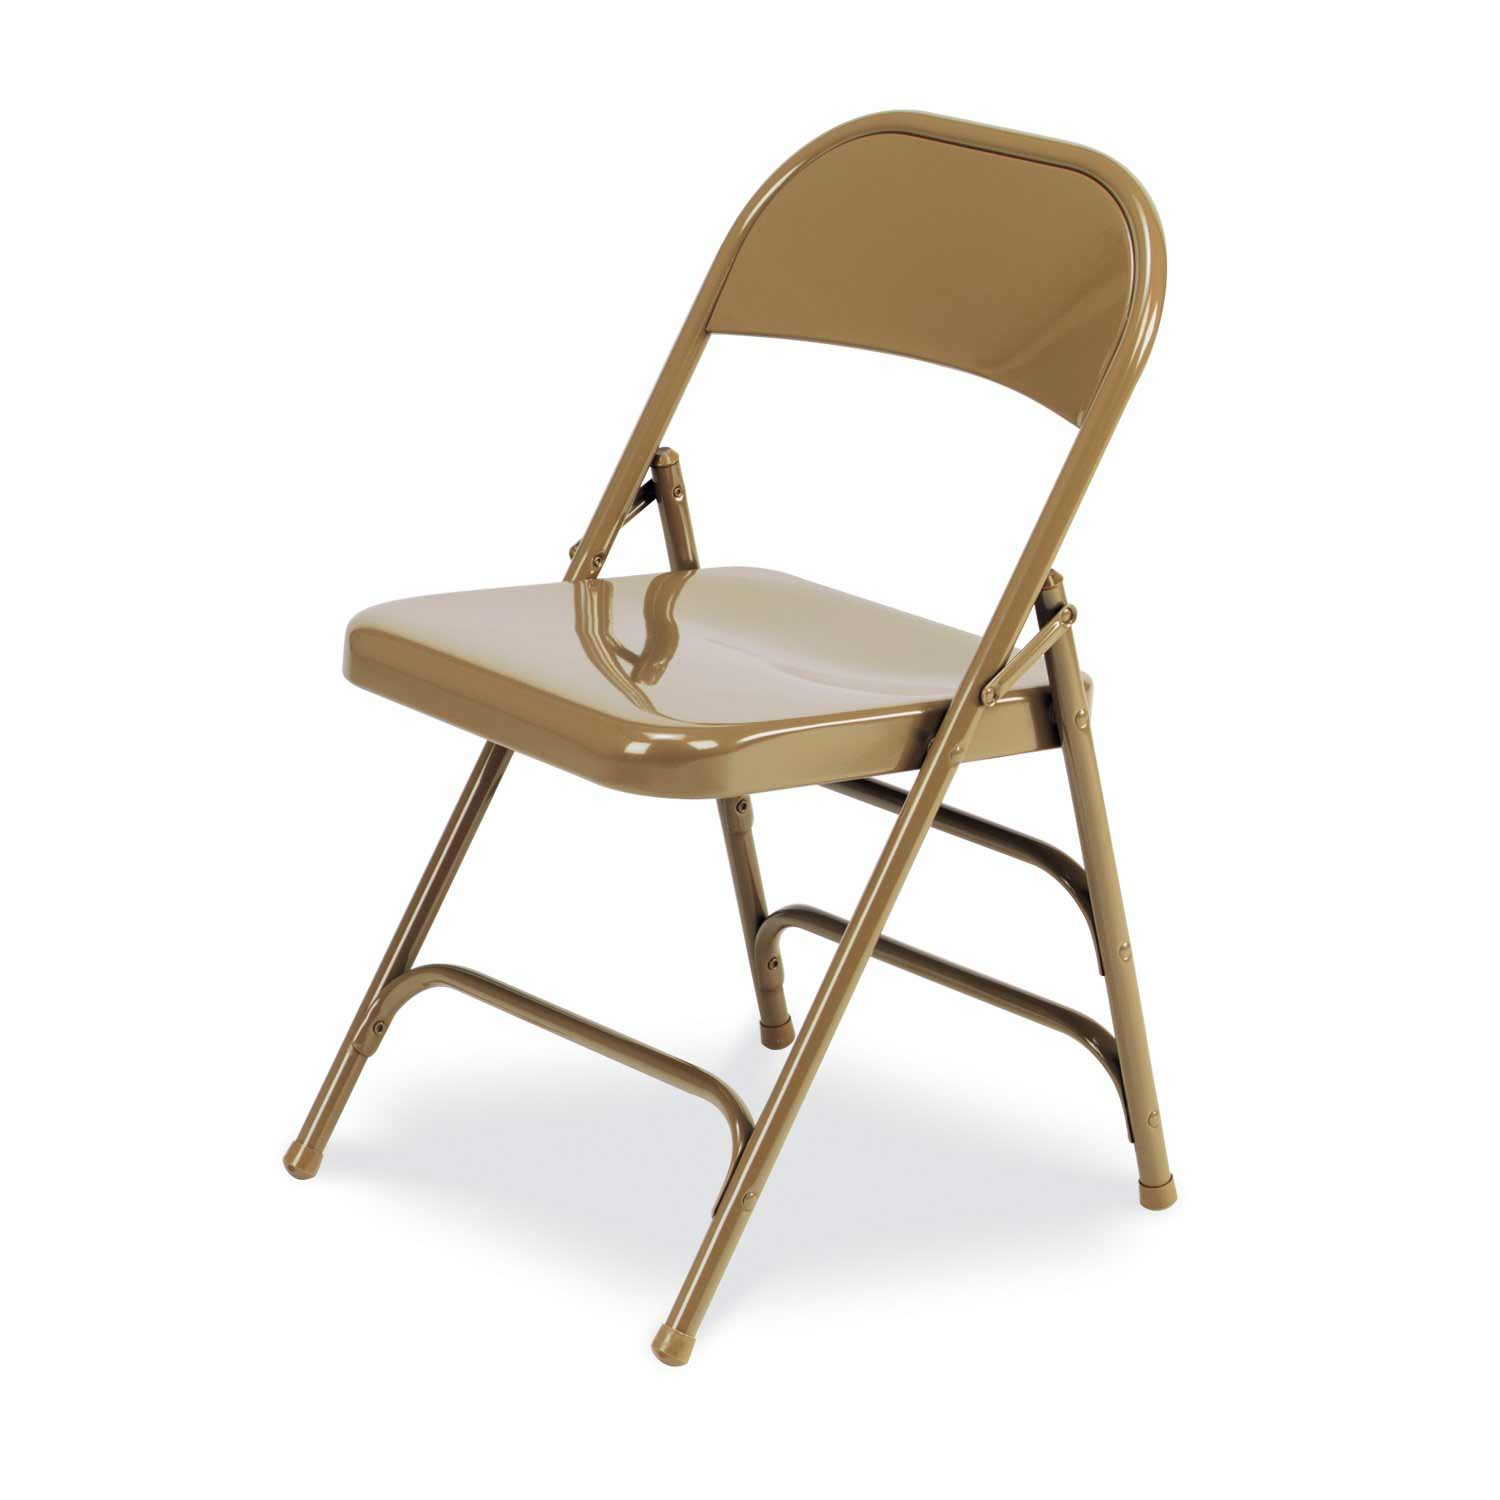 Virco folding chairs 167 in golden metal